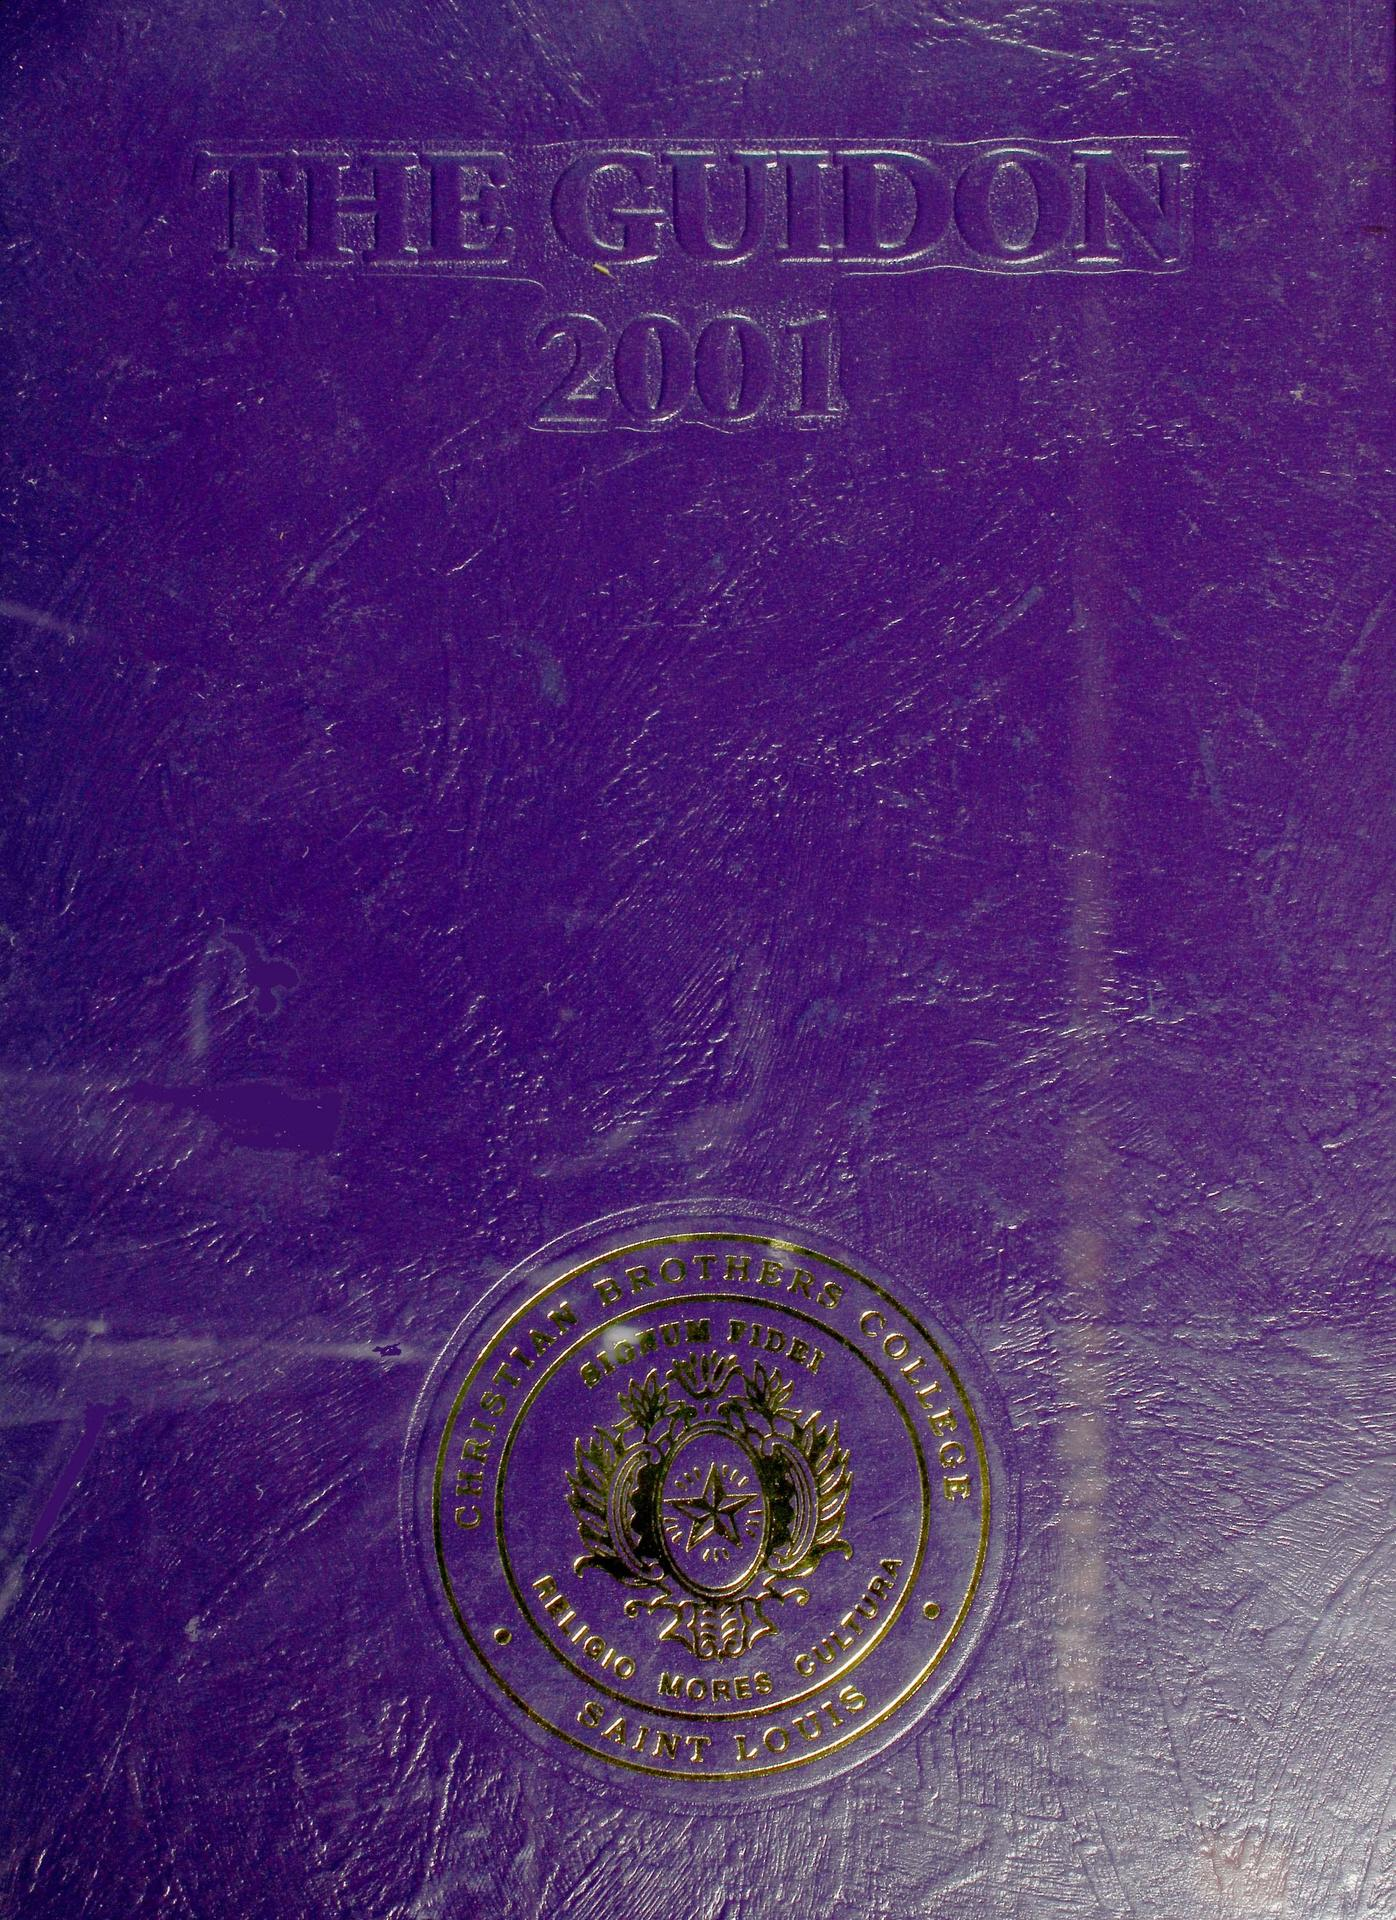 2001 CBC Yearbook